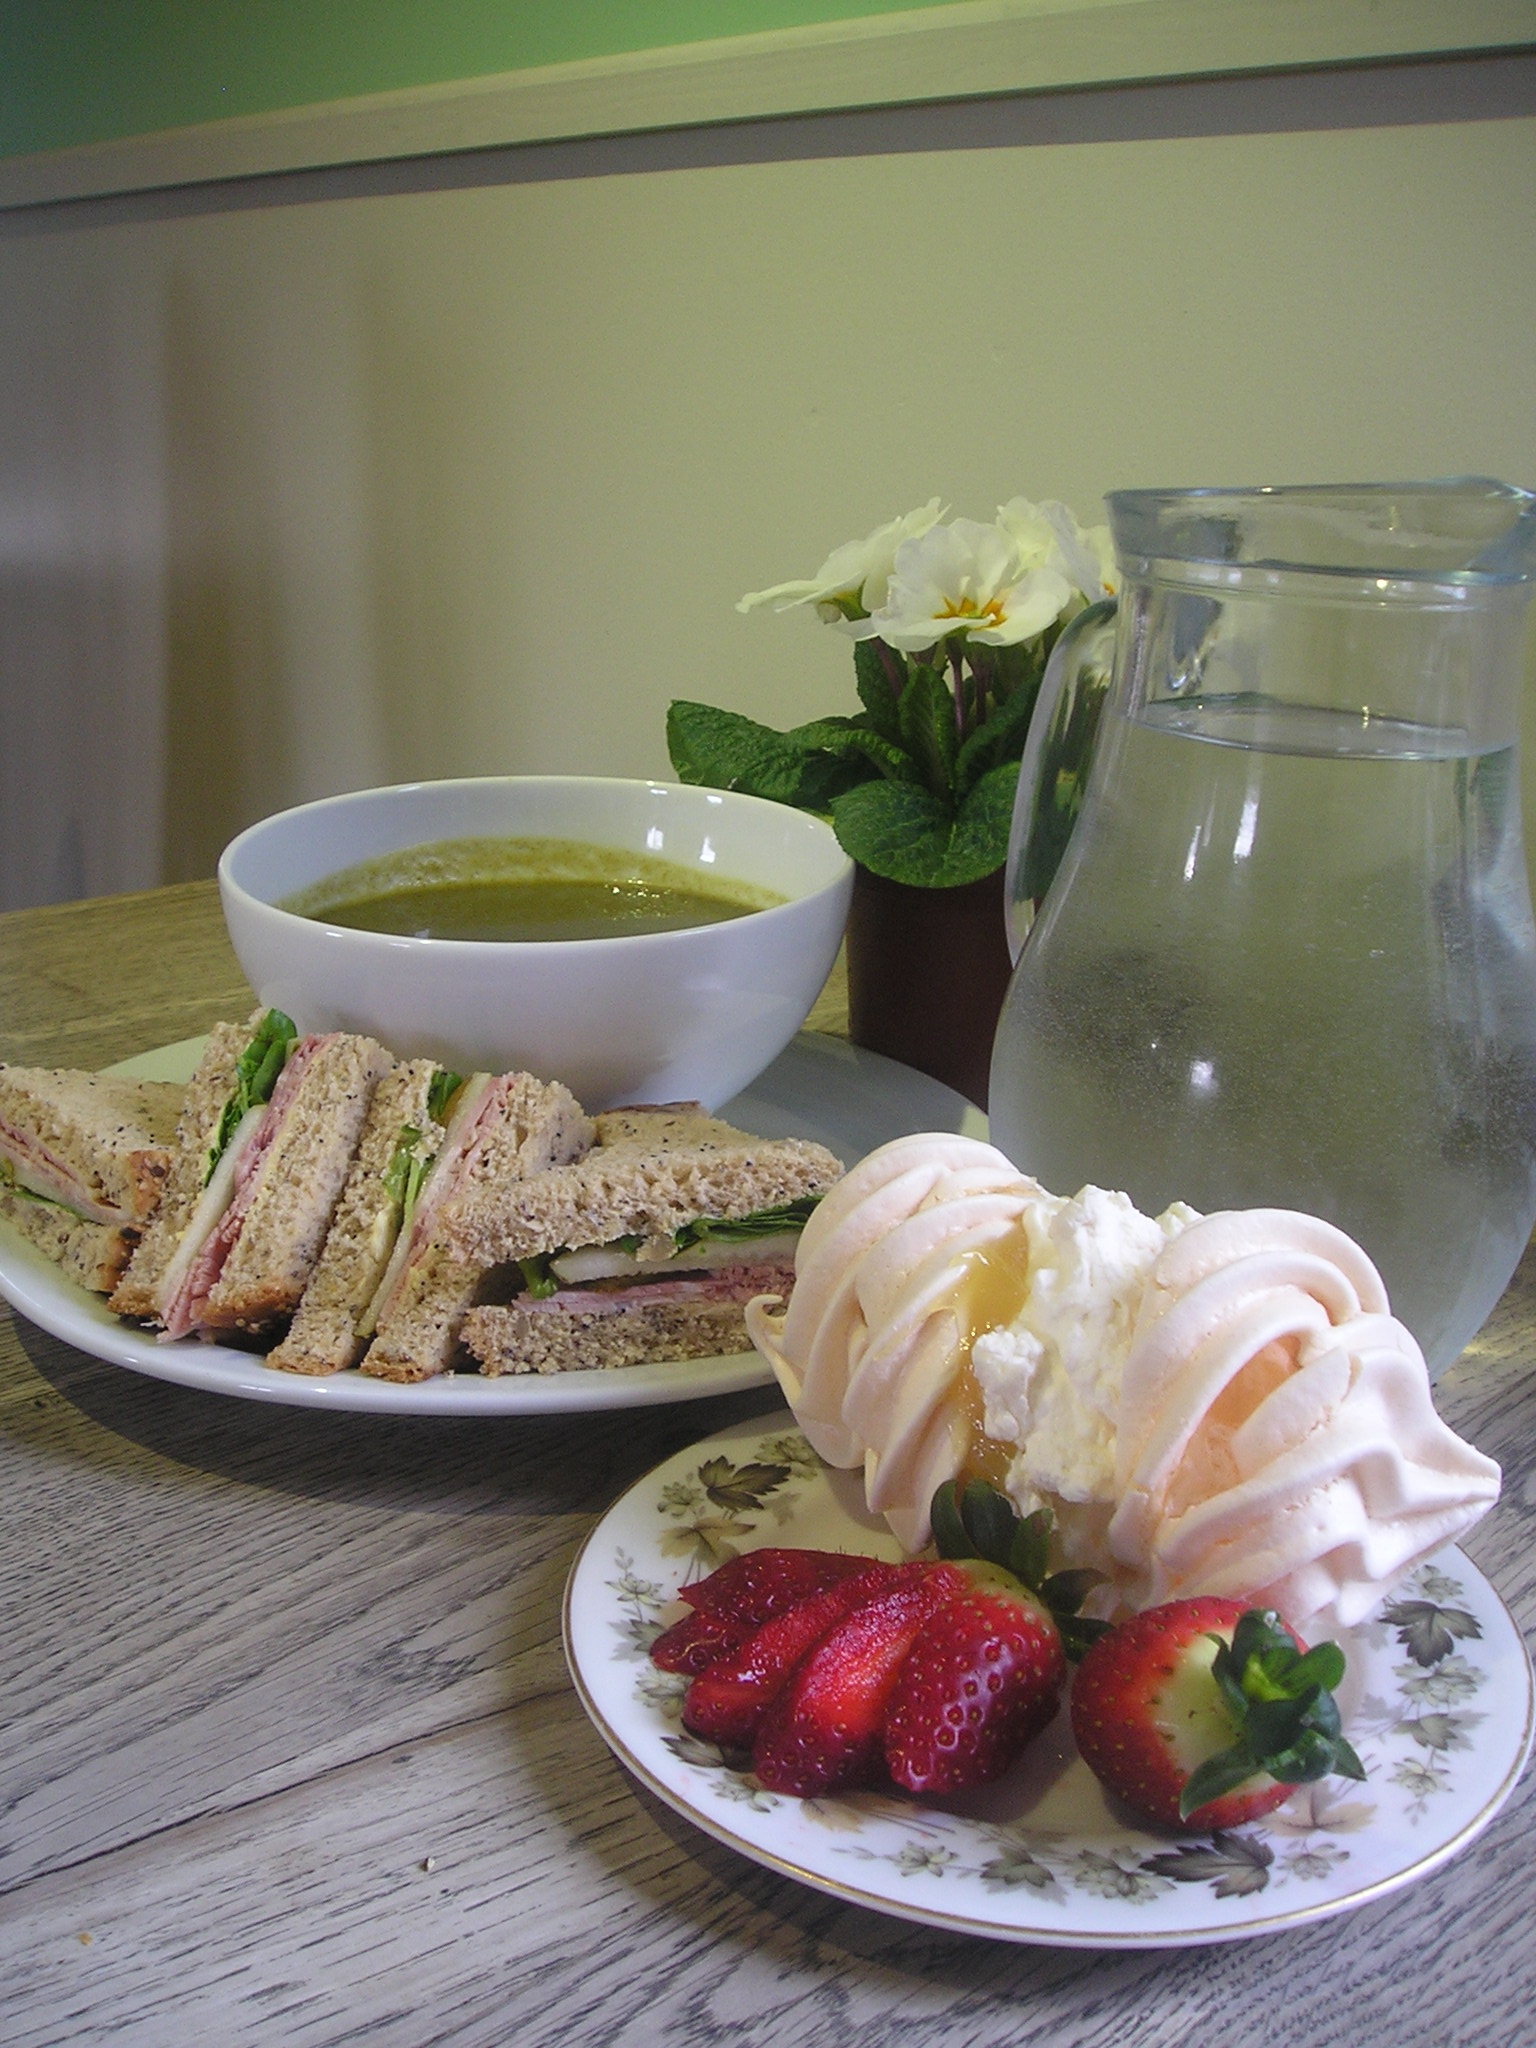 afternoon tea at the Birdhouse tearoom, near Jedburgh